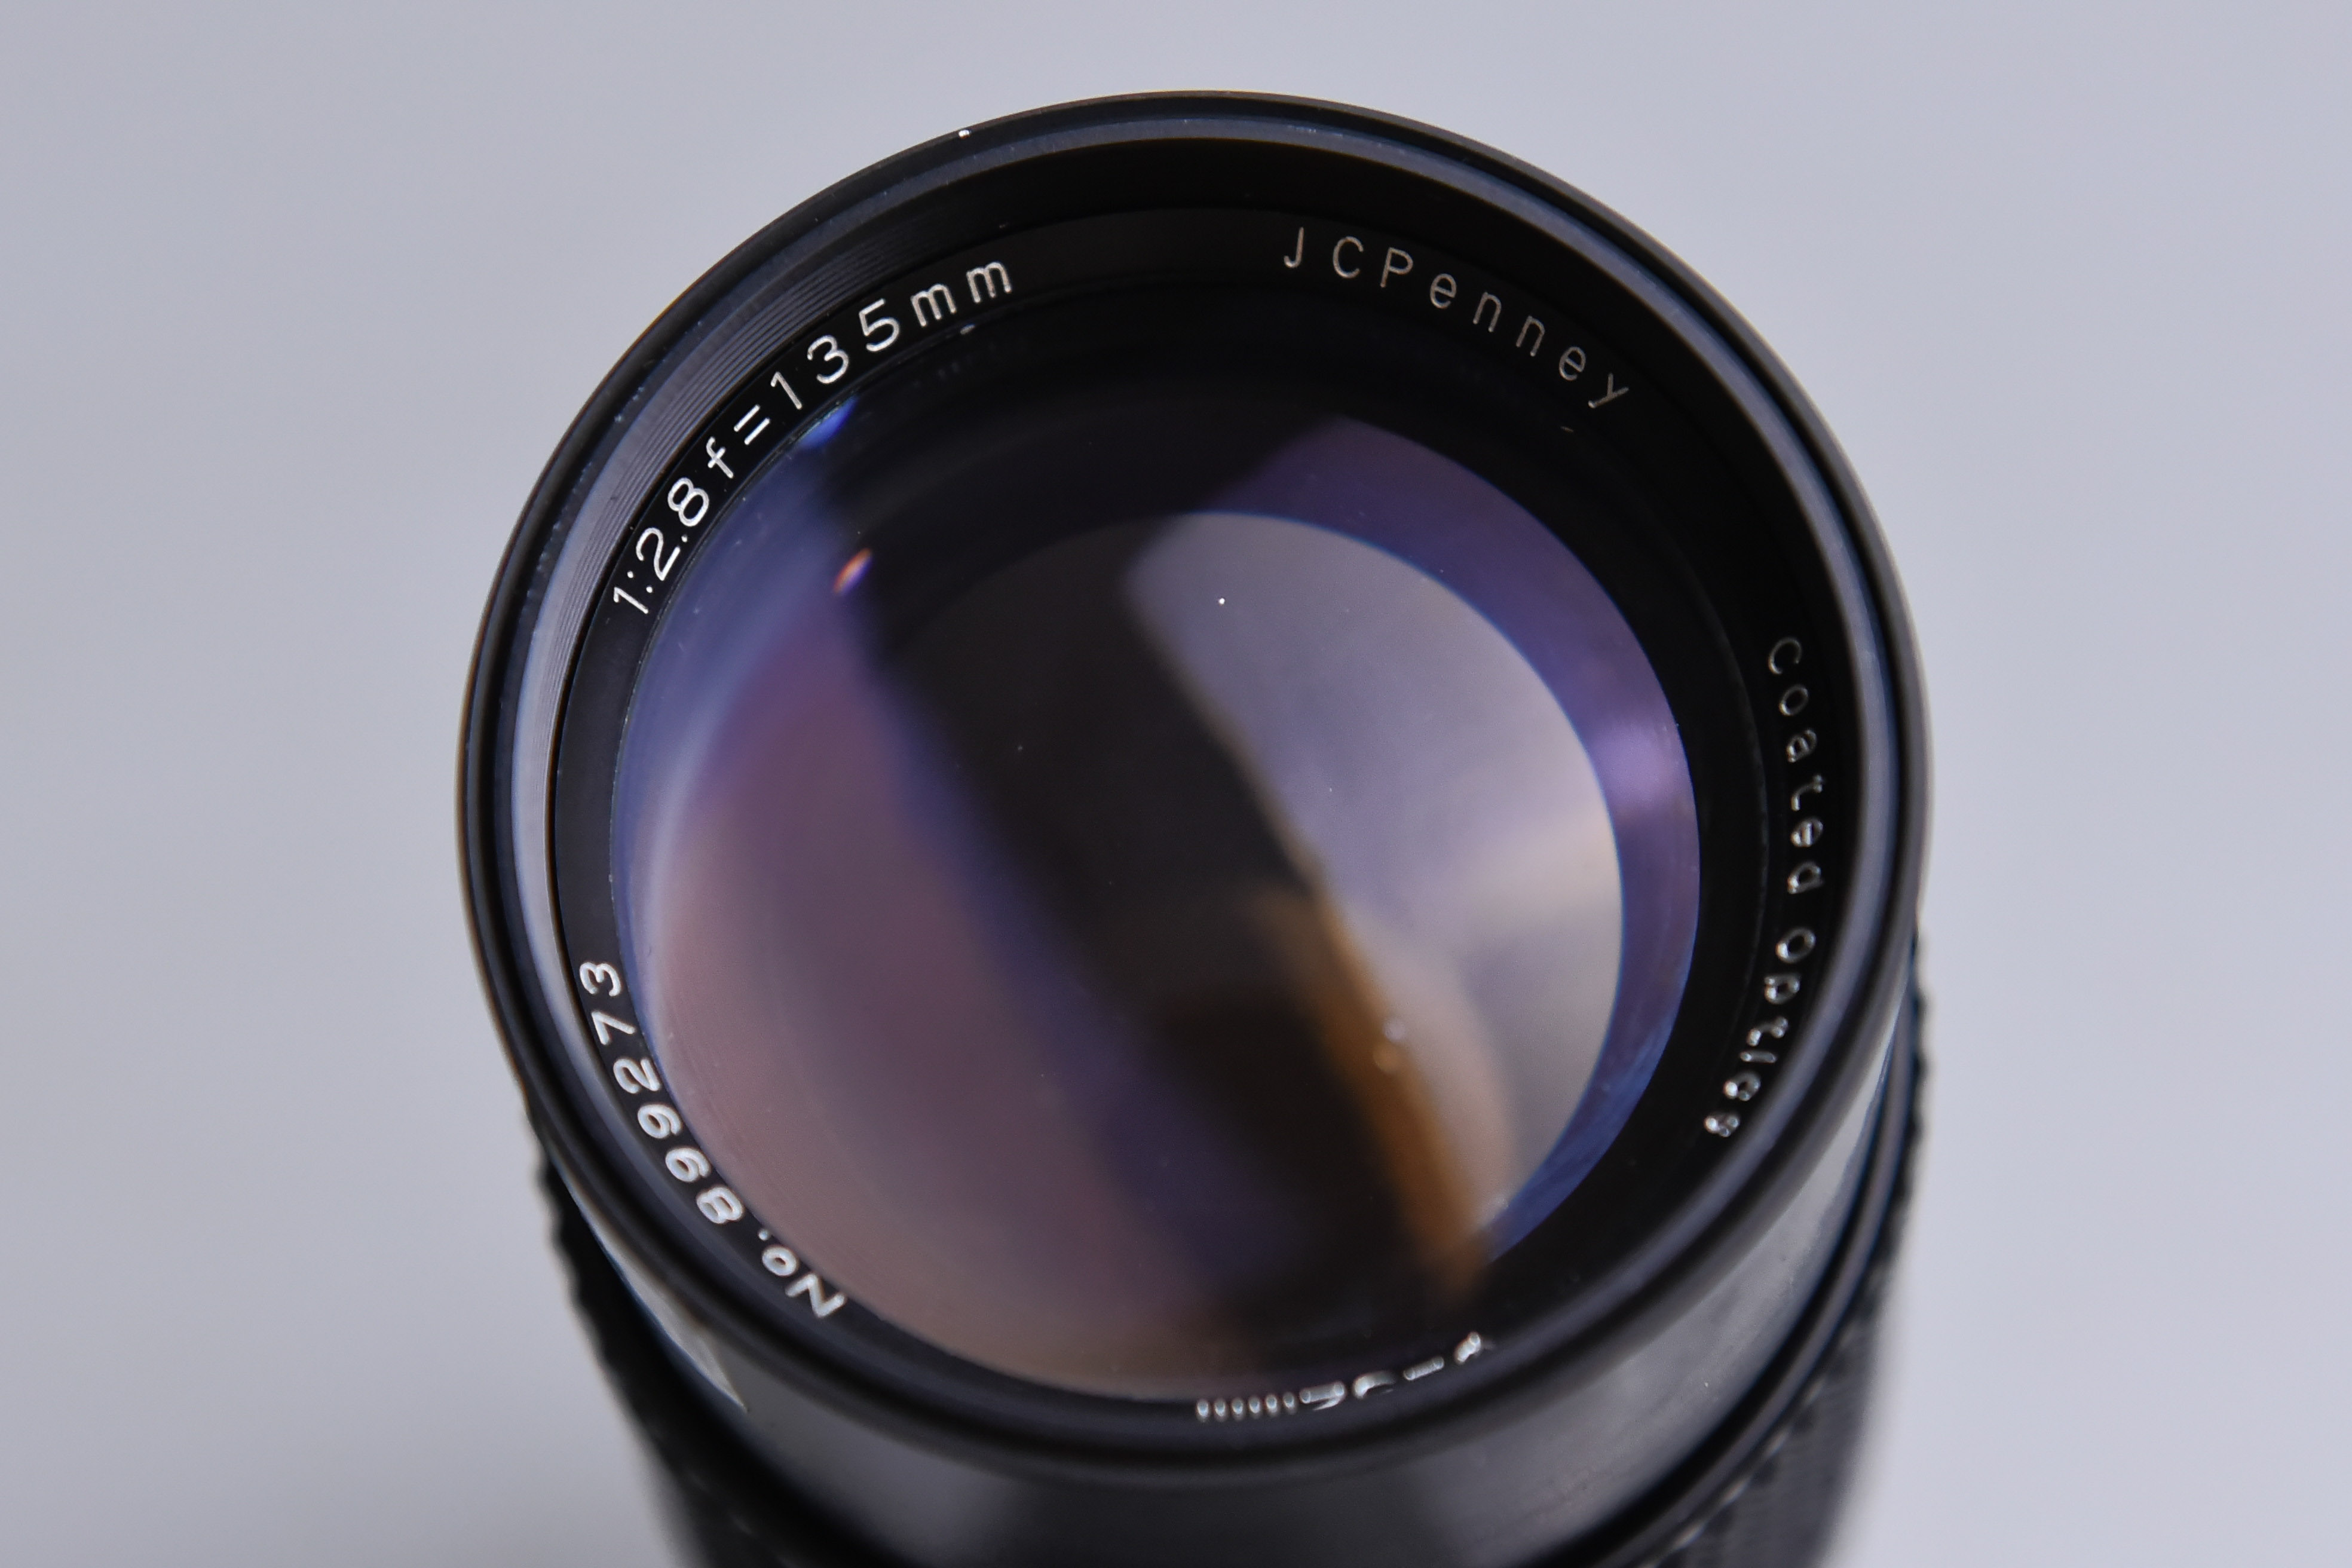 jcpenney-135mm-f2-8-mf-canon-fd-135-2-8-10583